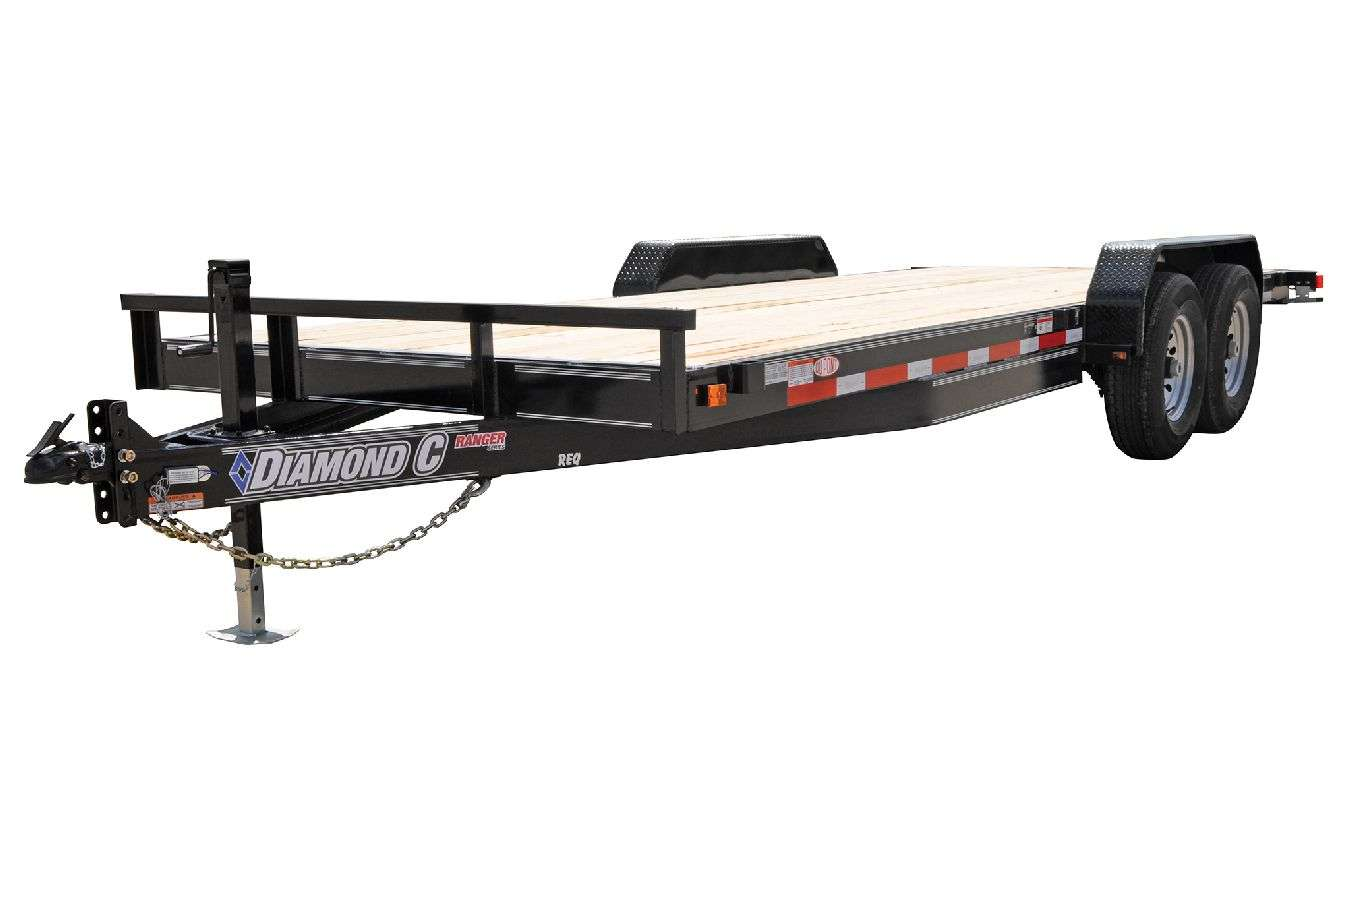 Diamond C Lowboy Equipment Trailers